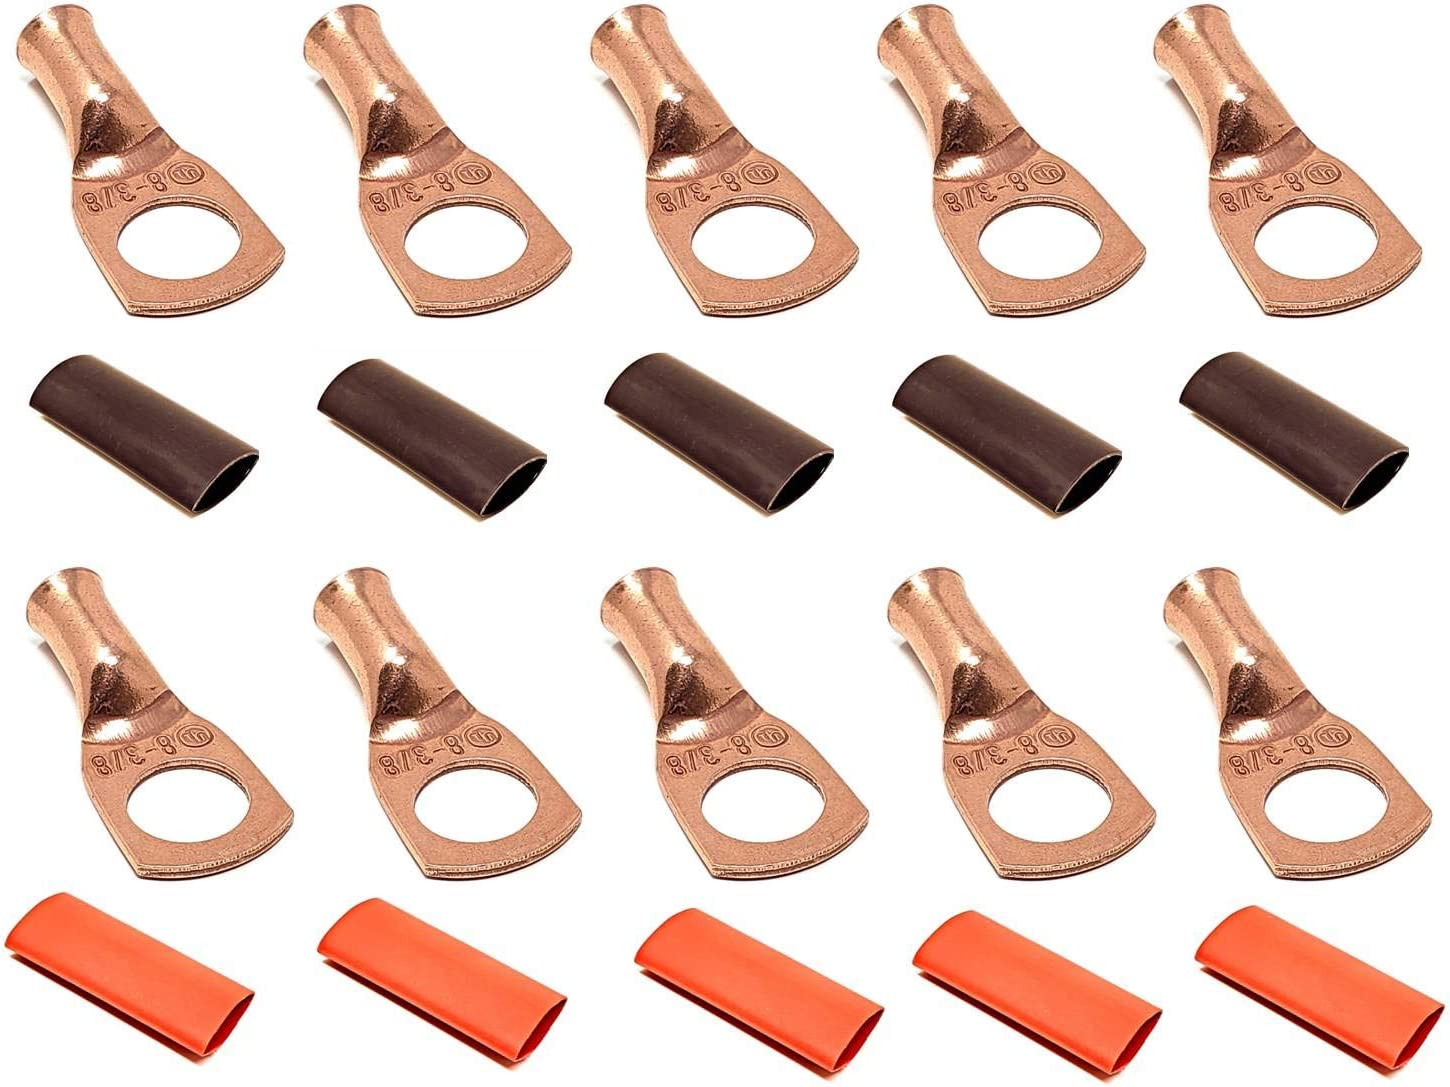 10pcs 8 Gauge 8 AWG x 3/8 Pure Copper UL Listed Cable Lug Terminal Ring Connectors with Dual Wall Adhesive Lined Red + Black Heat Shrink Tubing – by WNI 71M7tge%2BQTL